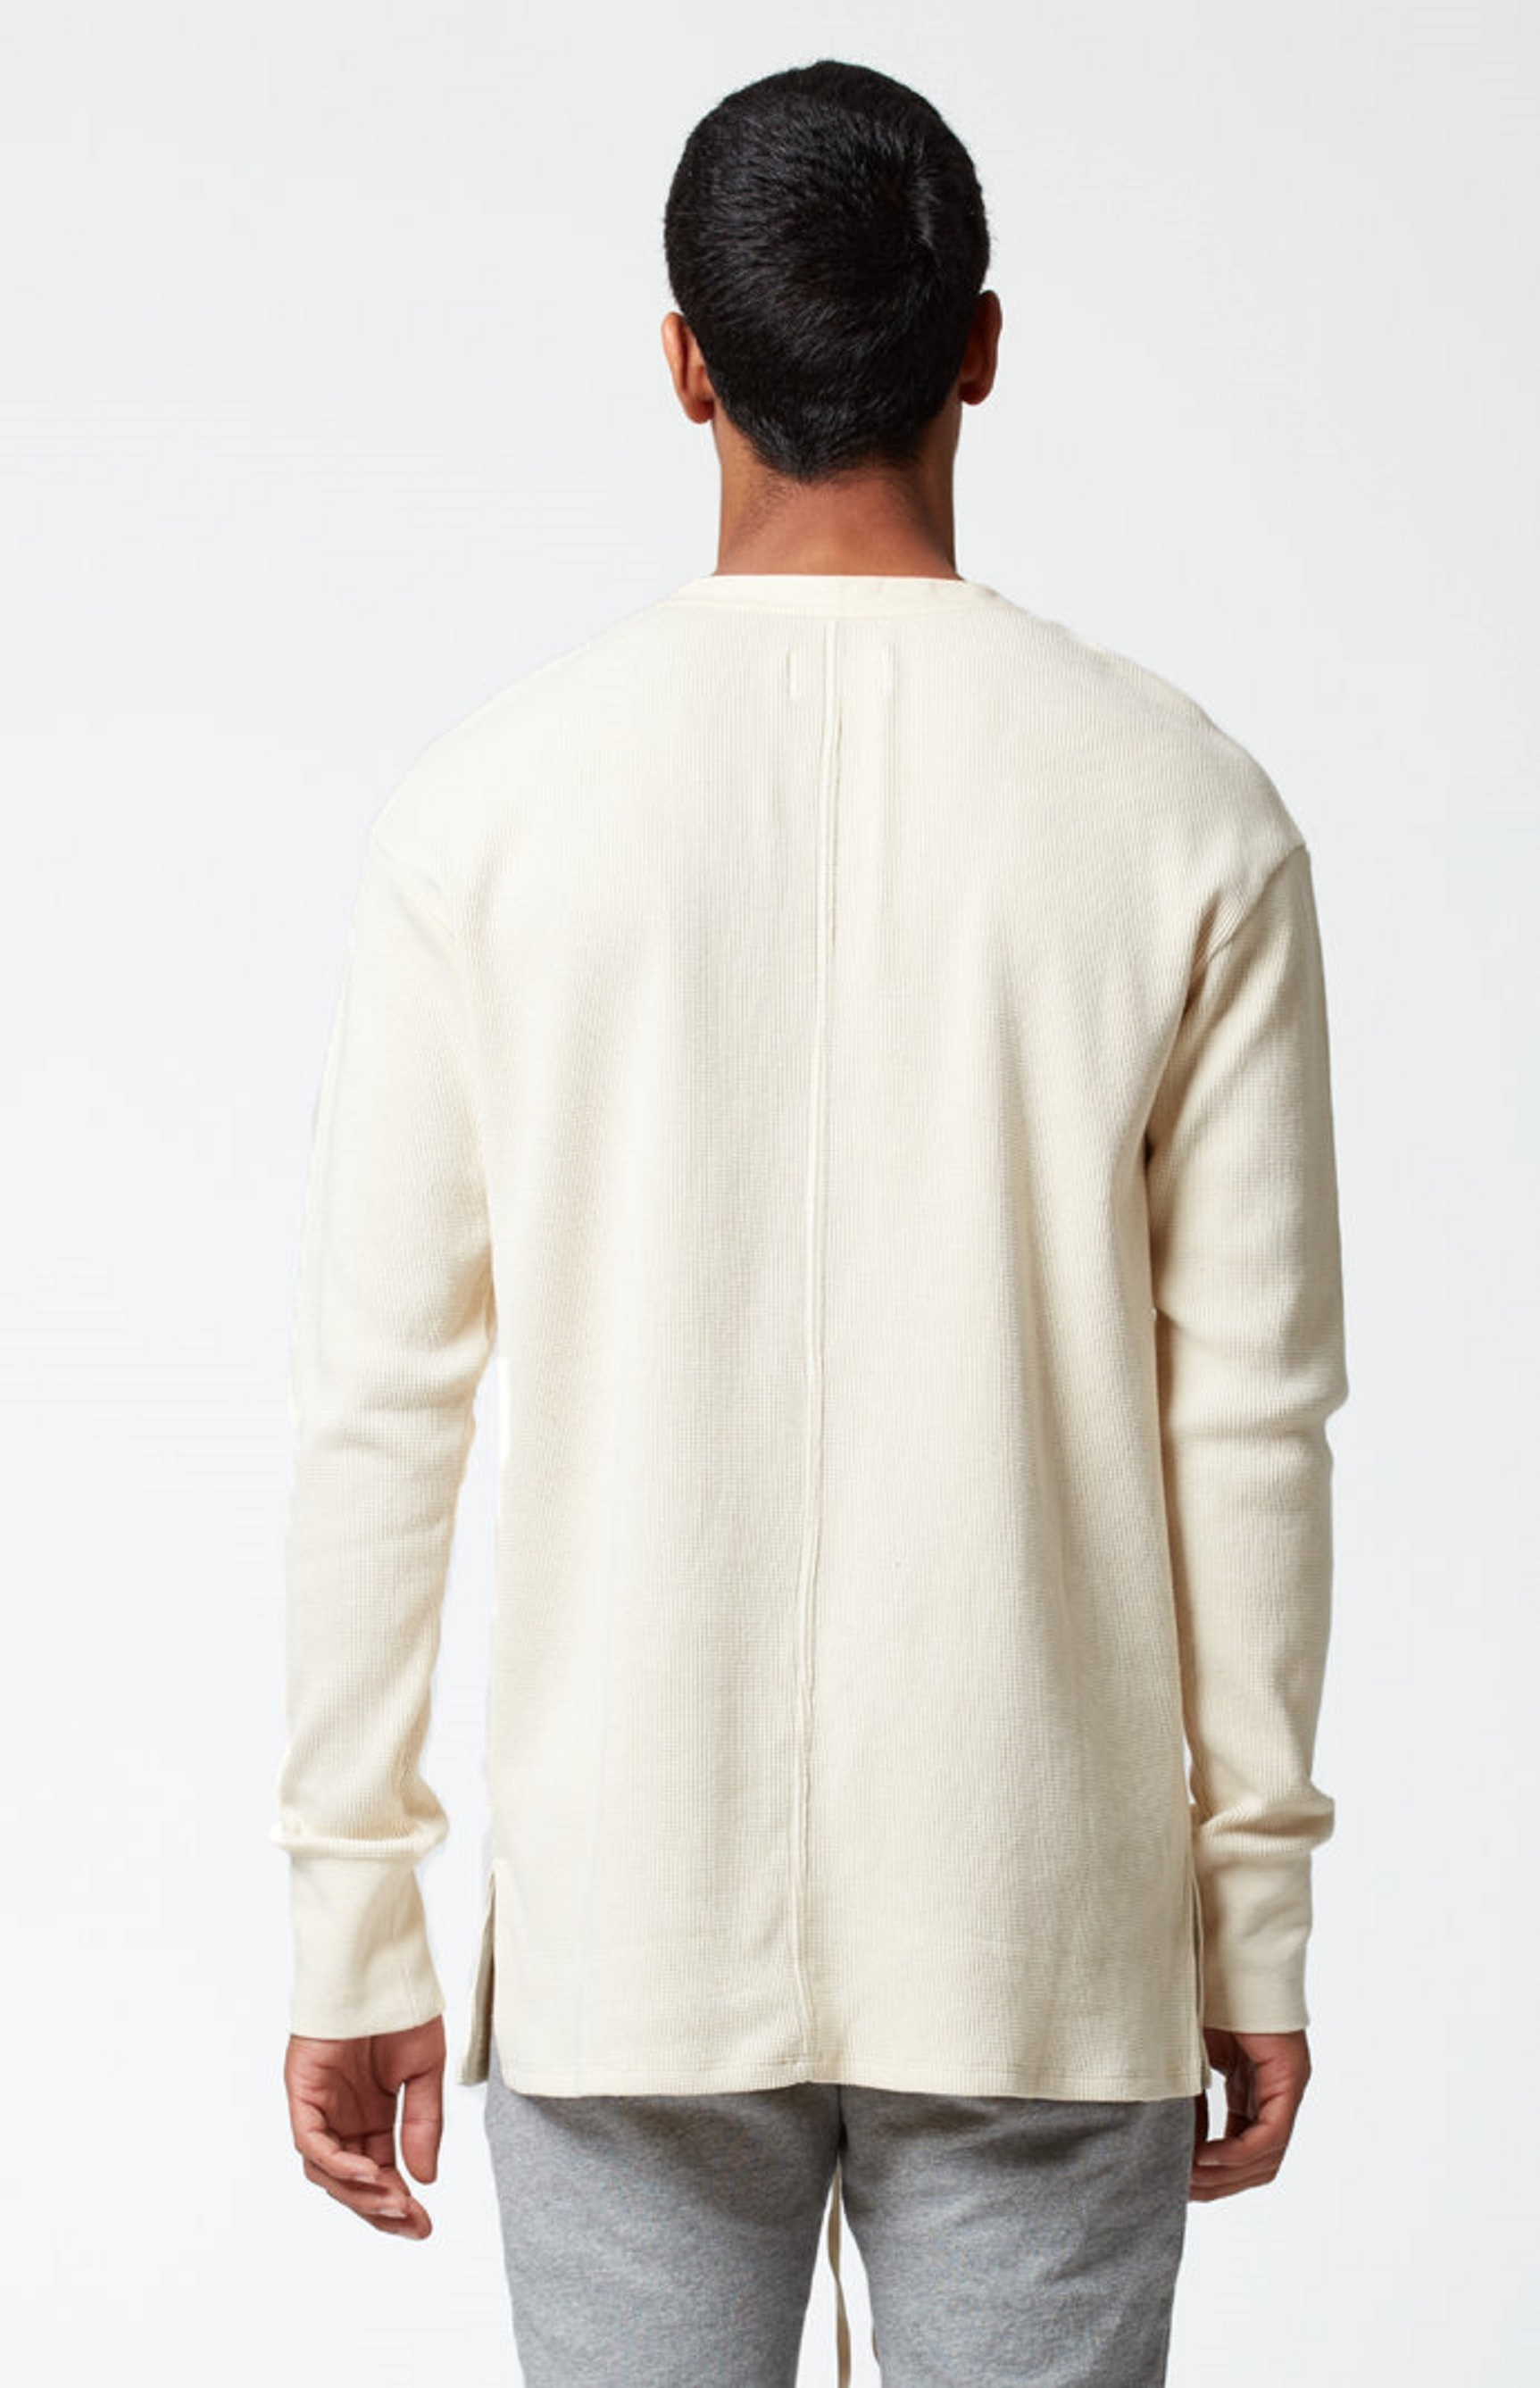 人気! 完売! FOG - Fear Of God Waffle Knit Henley Shirt ロンT